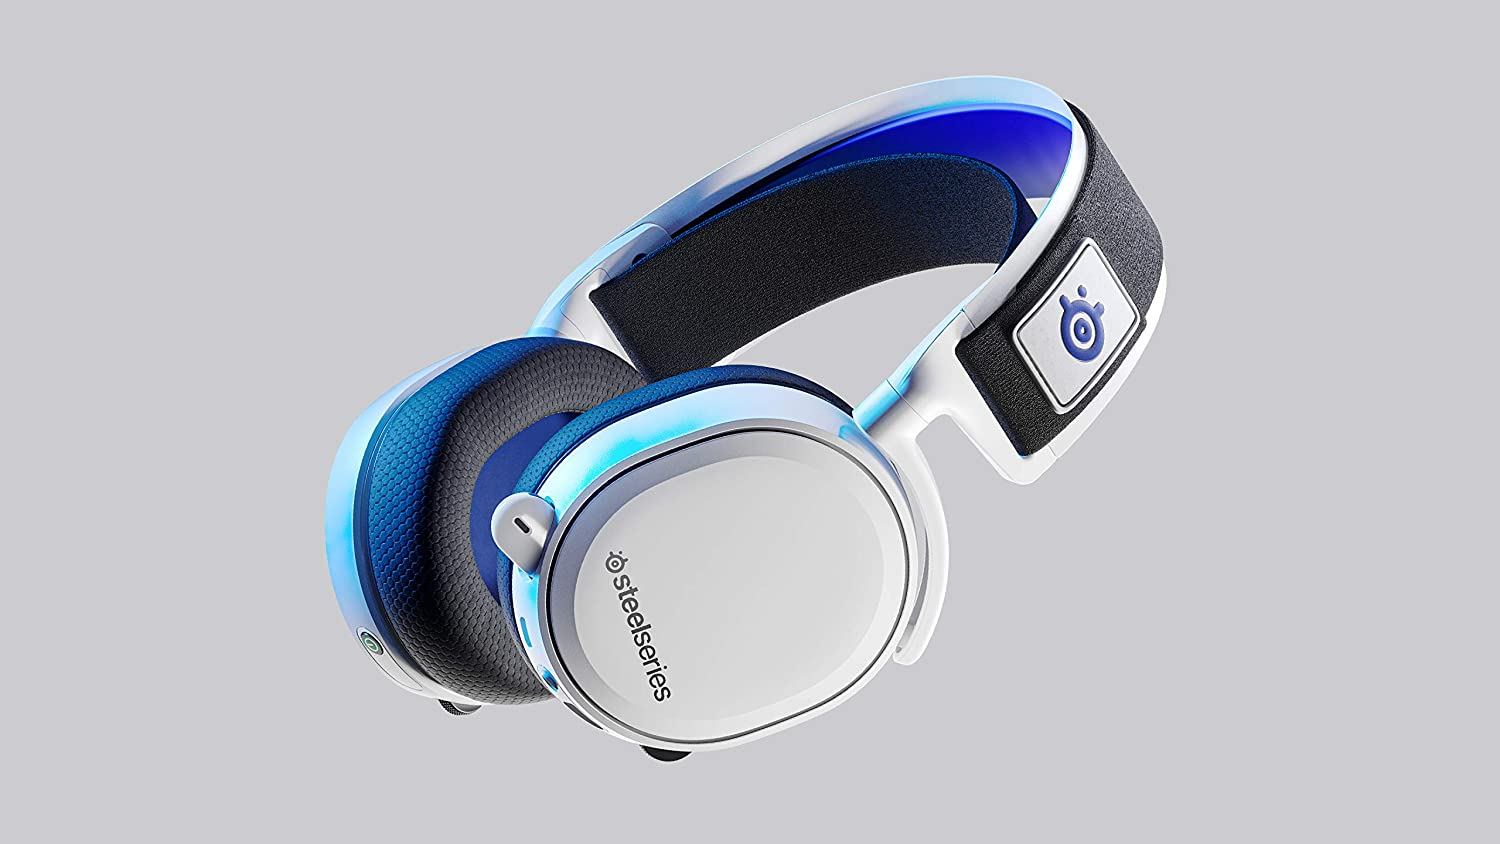 Office Electronics SteelSeries Arctis 7P Wireless White for Playstation 5  and Playstation 4 Lossless 2.4 GHz Wireless Gaming Headset Office Products  kalpavrikshatutorials.com